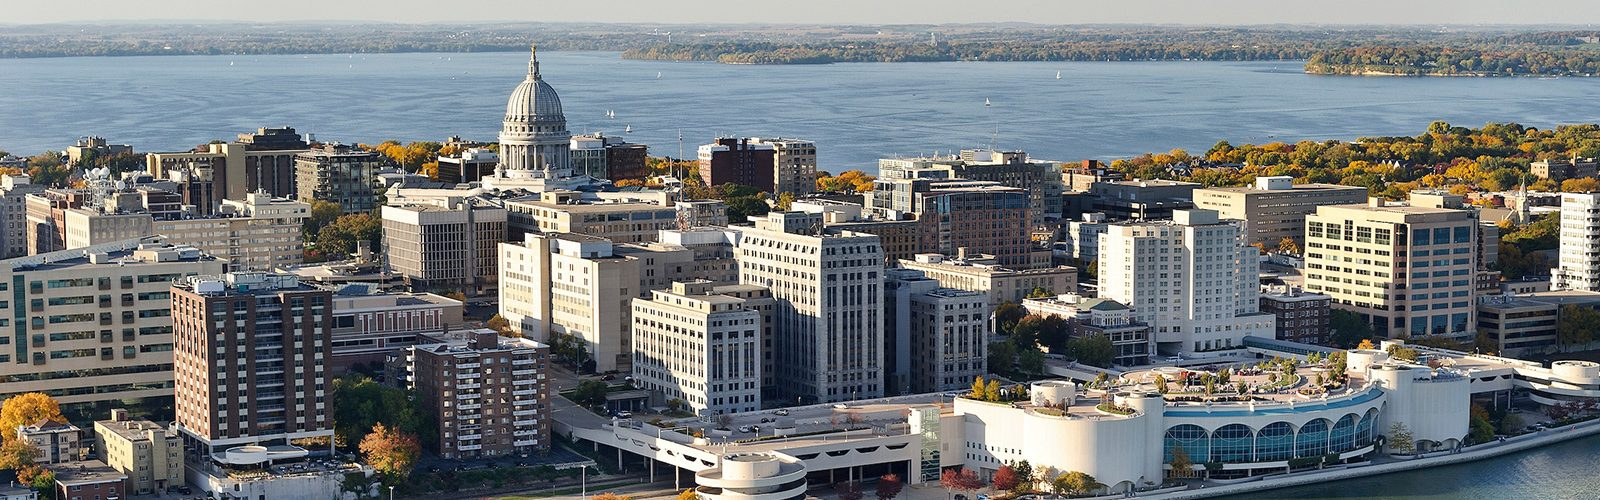 Aerial view of downtown Madison, WI.